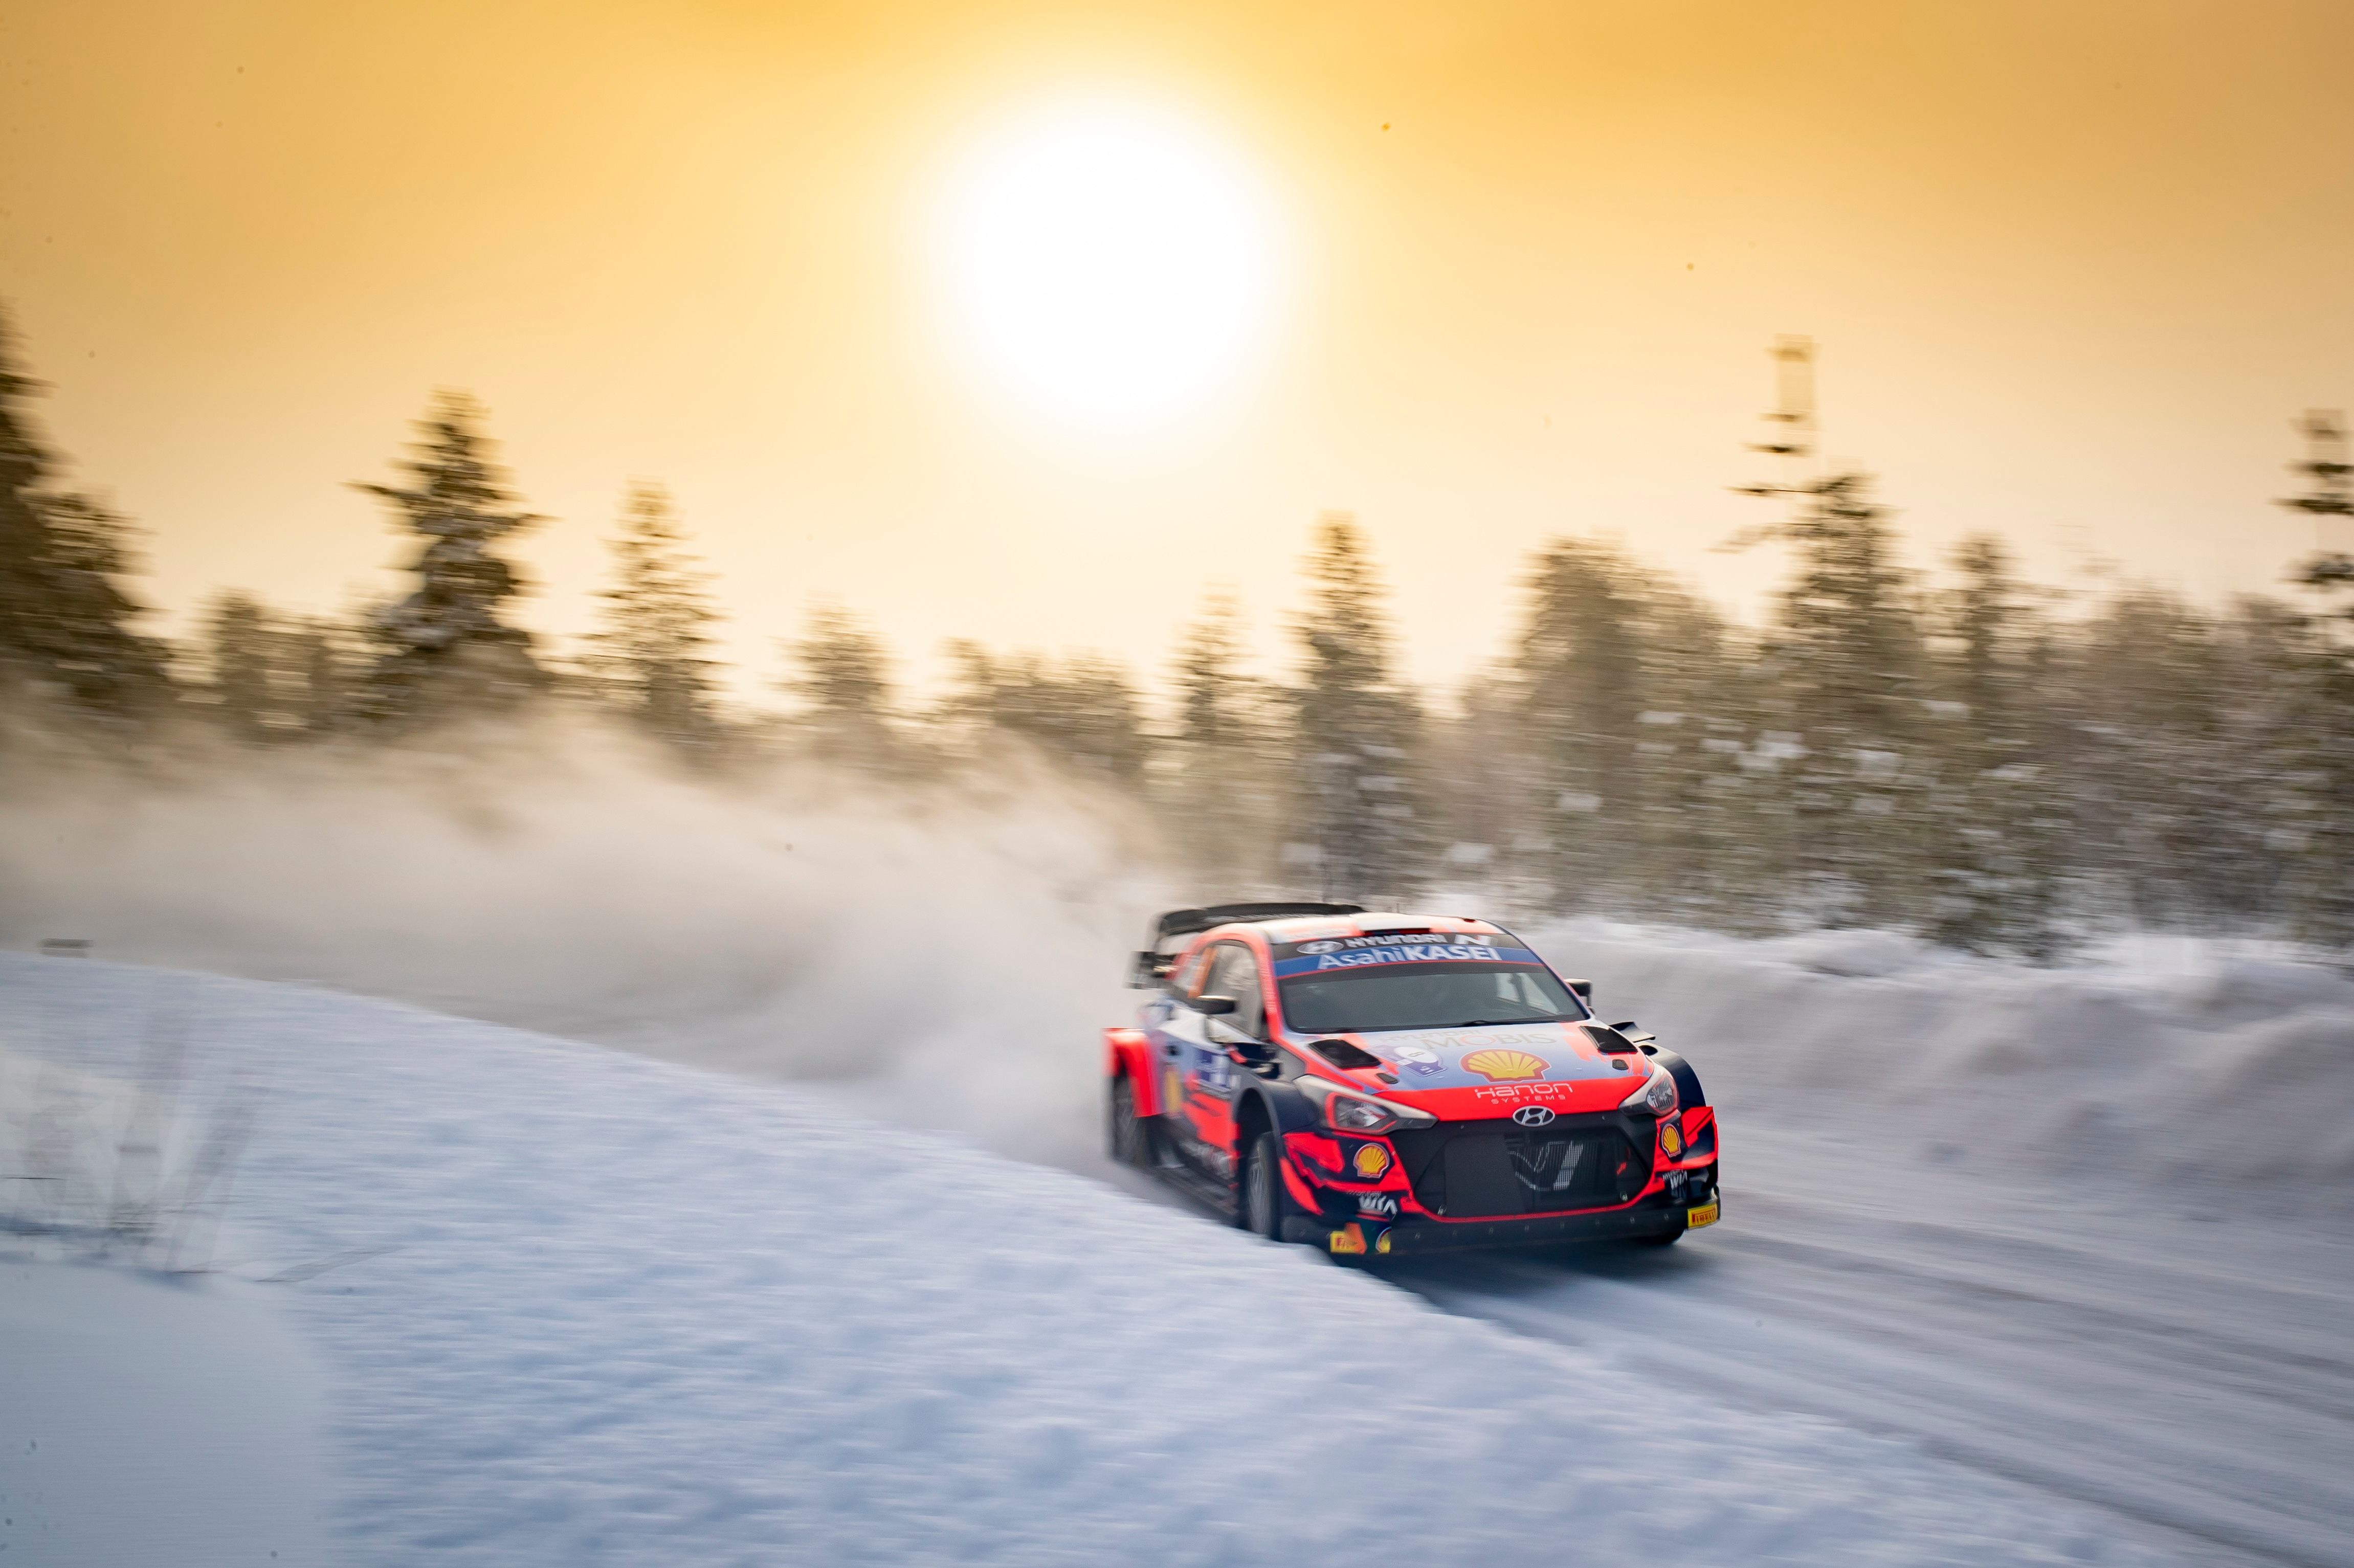 Ott Tänak (EST), Hyundai World Rally Team, Hyundai i20 Coupe WRC 2021 Arctic Rally